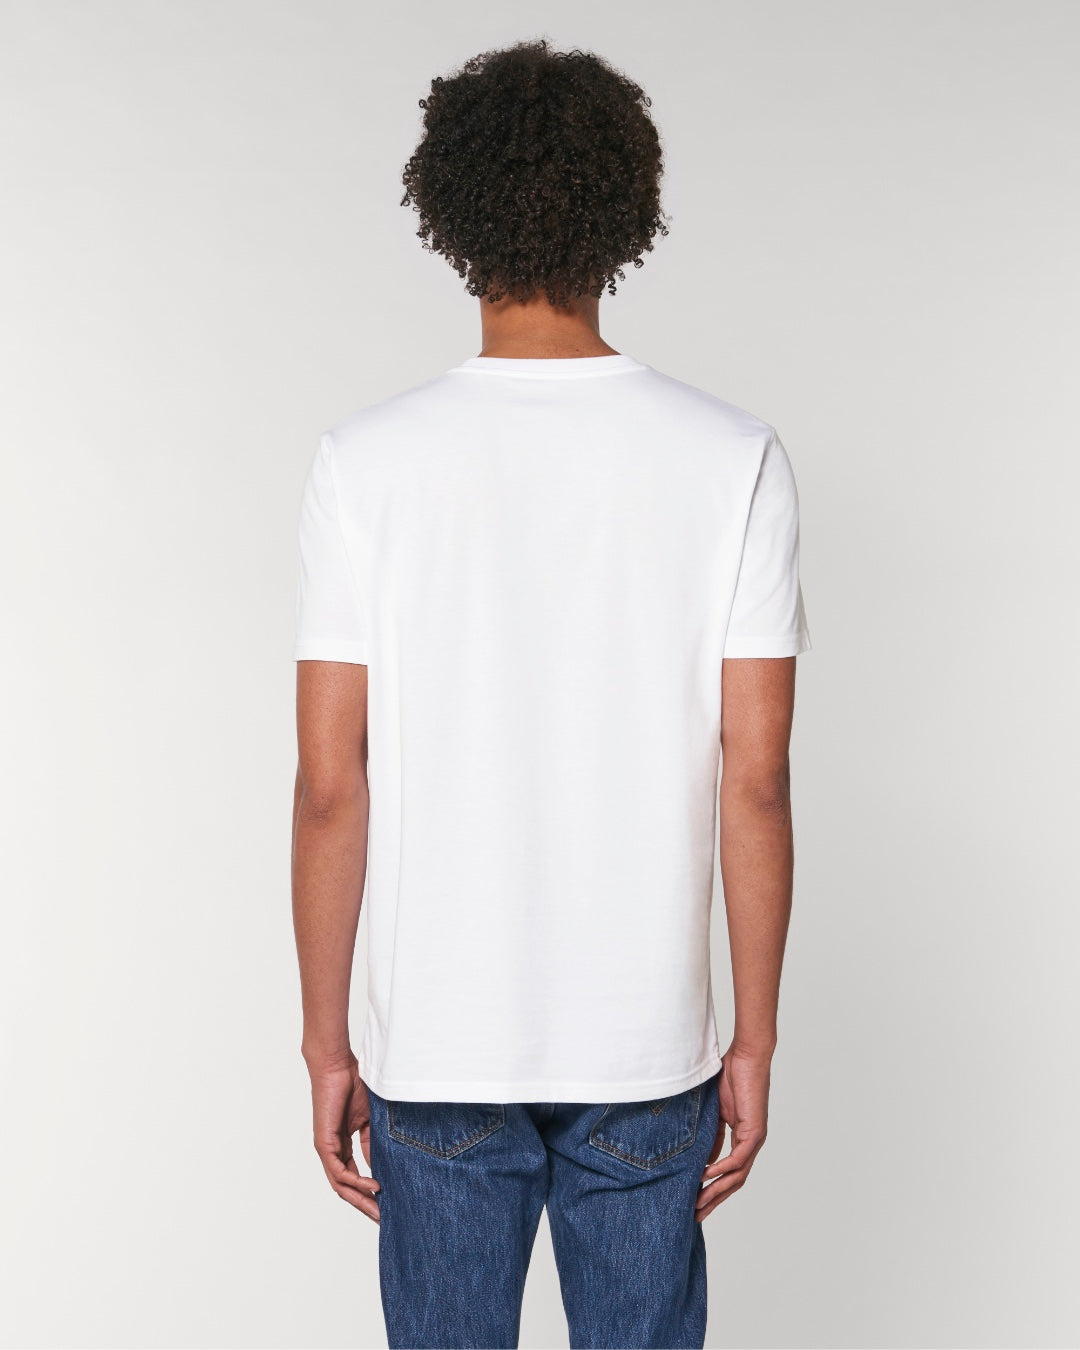 The Green Tee - sustainable, vegan and plastic free t-shirt - colour: white